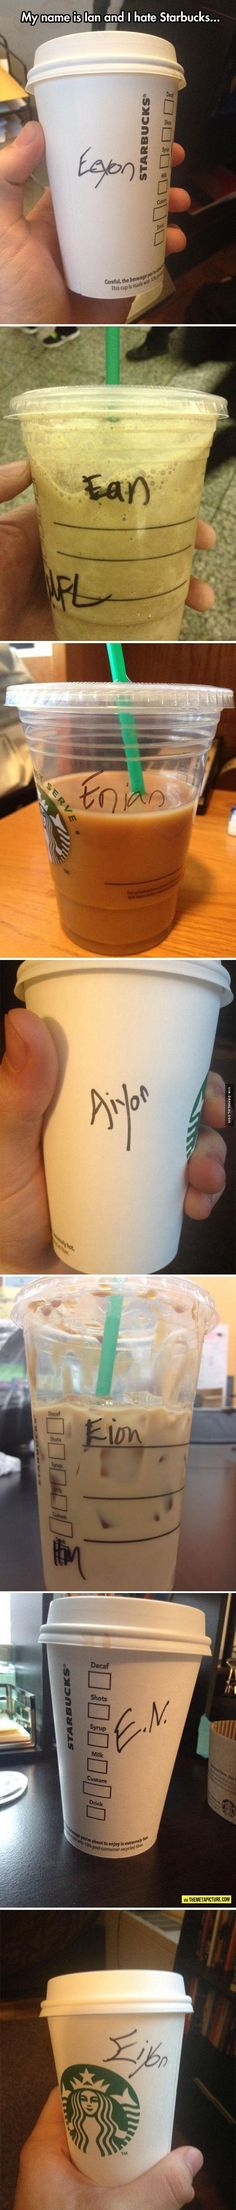 They Just Can't Get It Right - The Best Funny Pictures